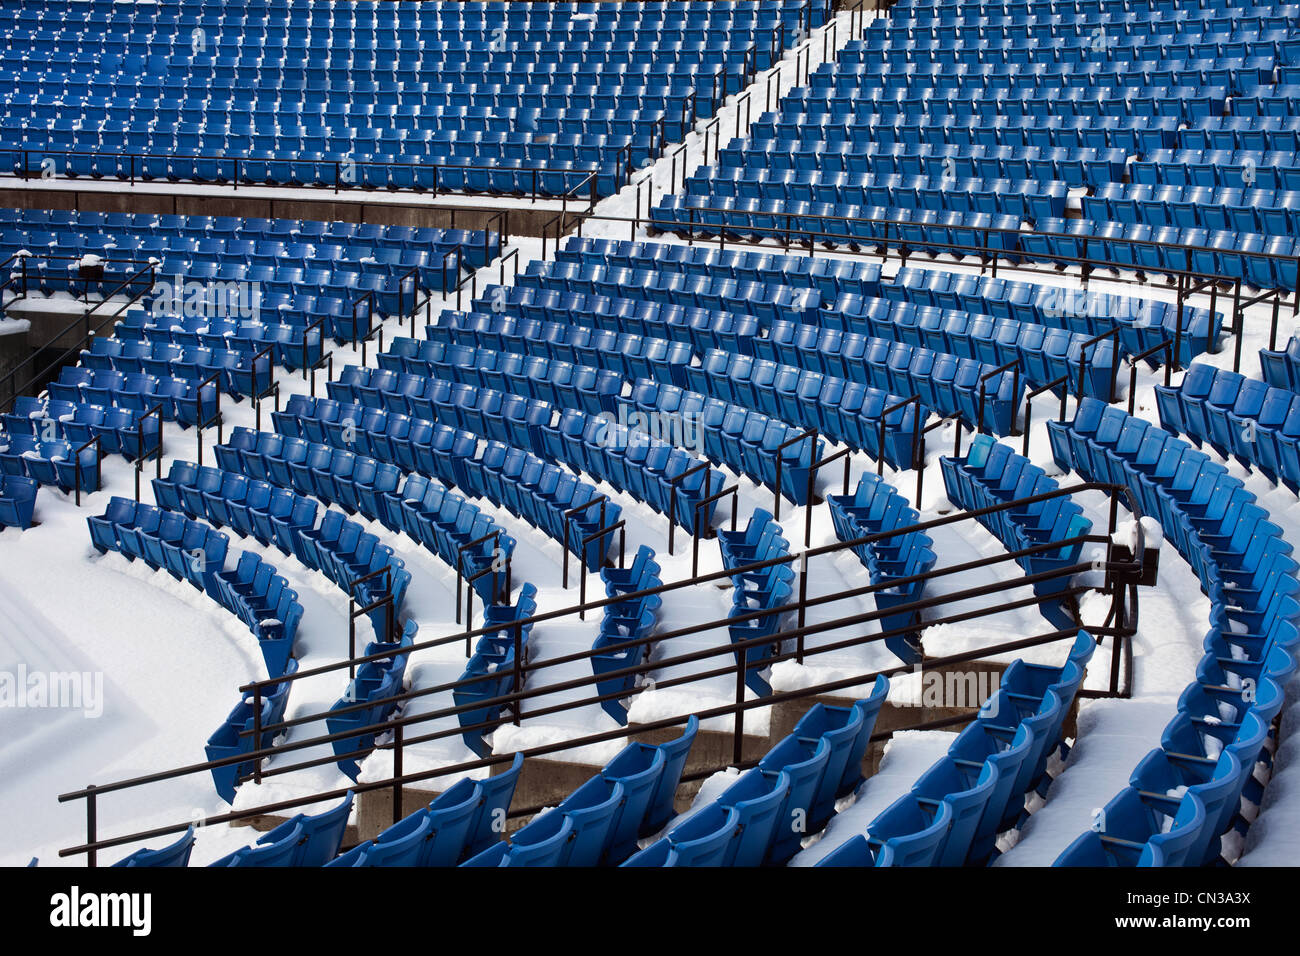 Empty stadium seats in the snow - Stock Image